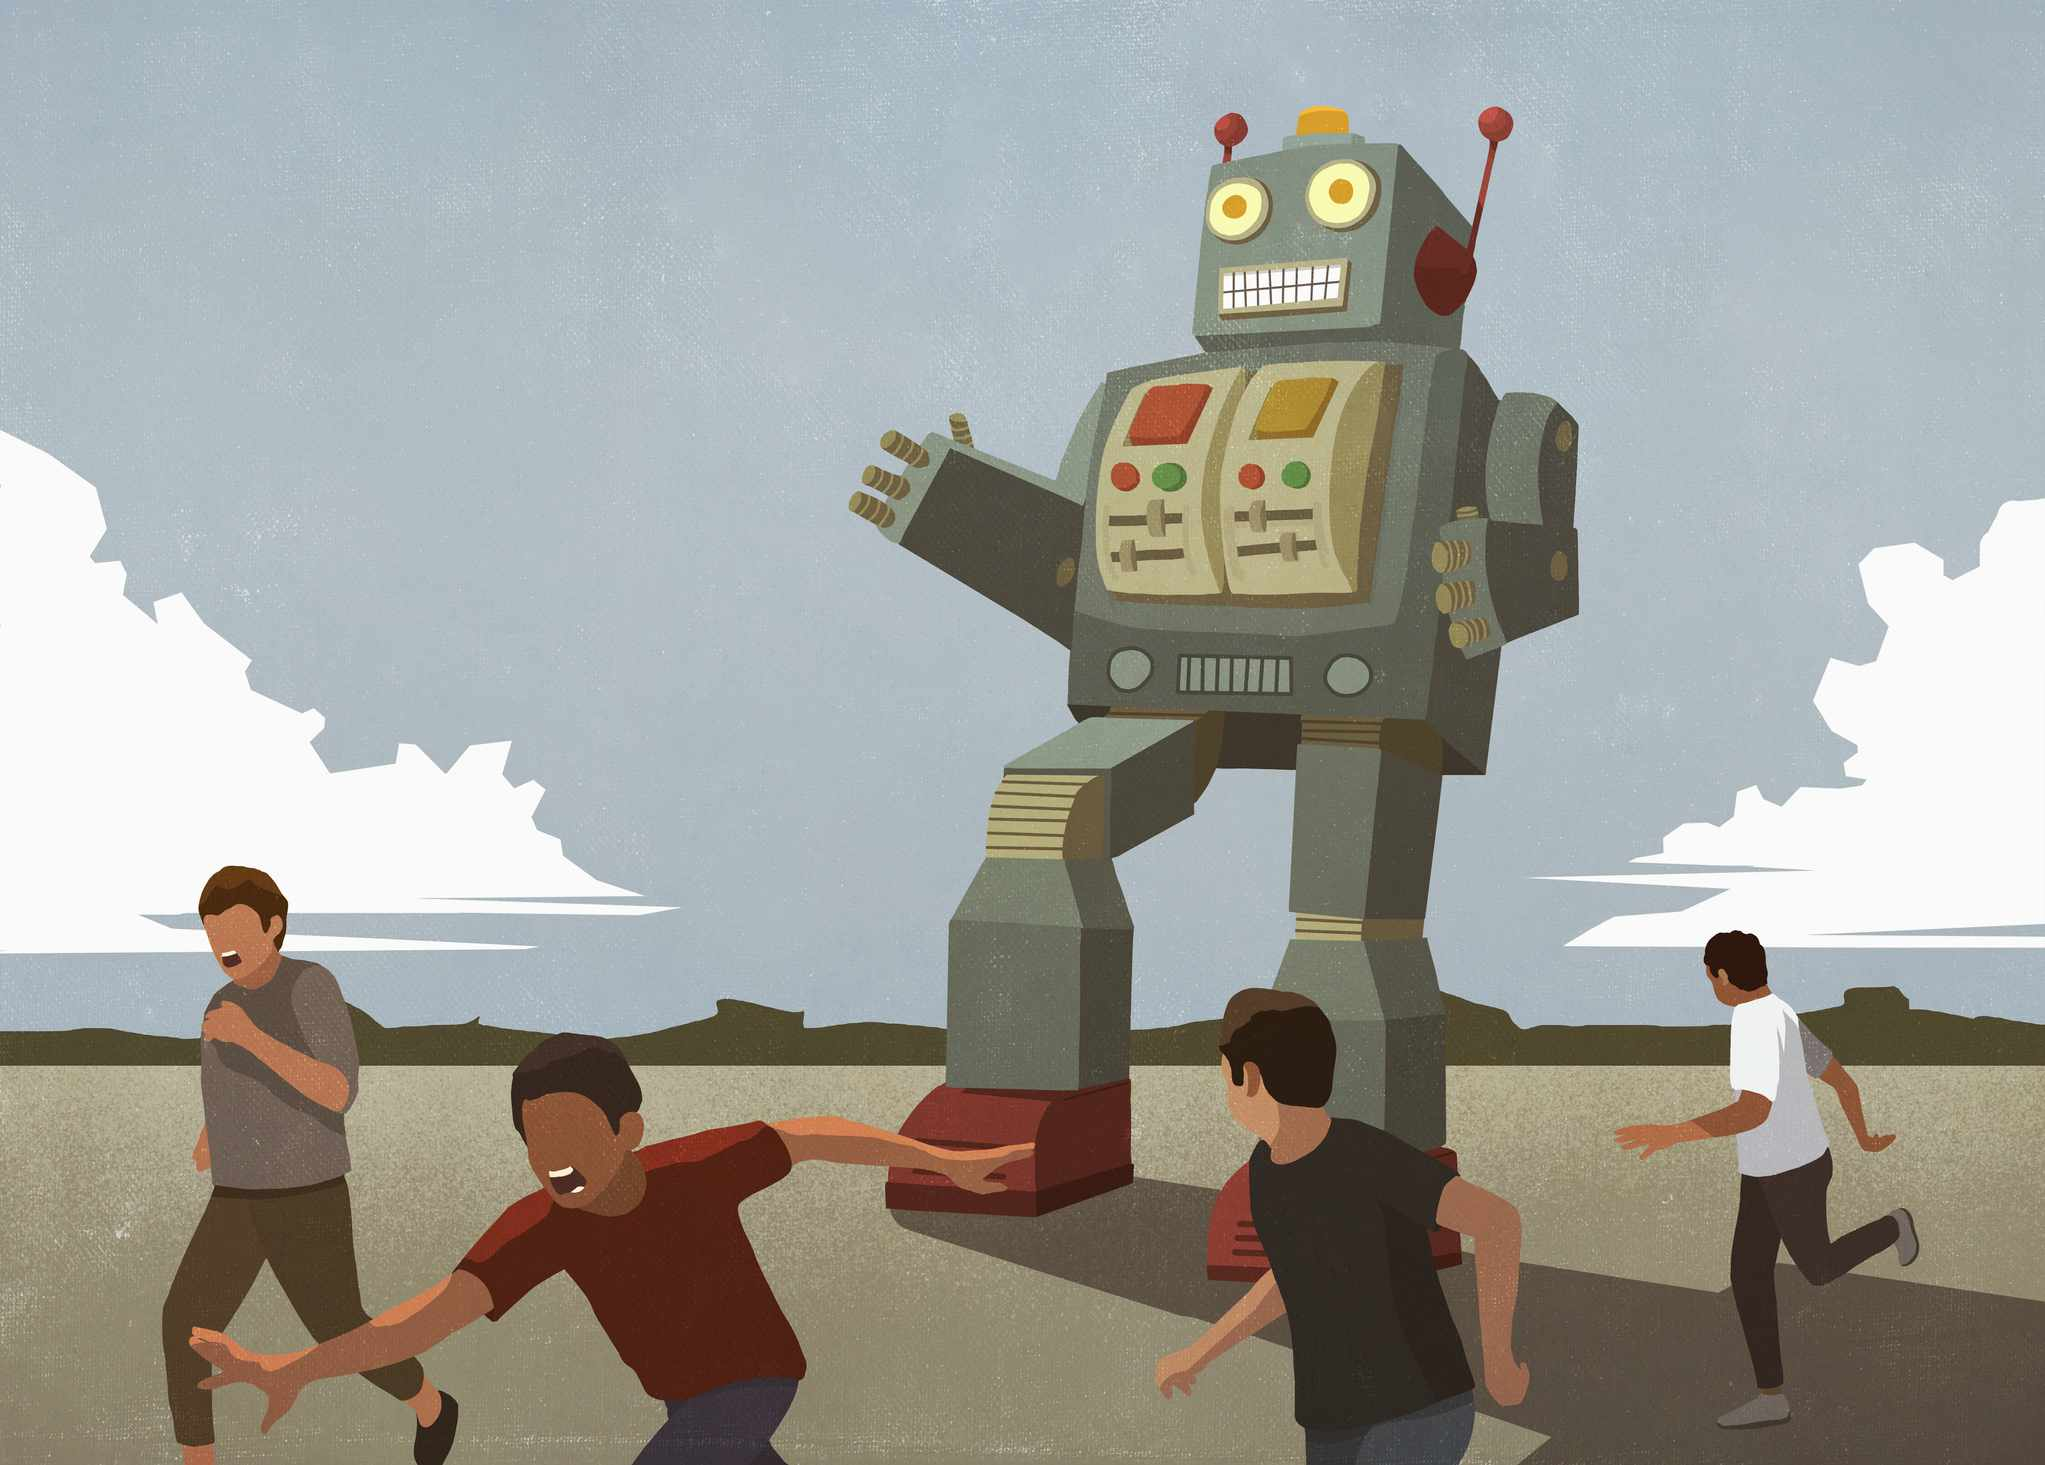 Illustration of a large robot chasing people.